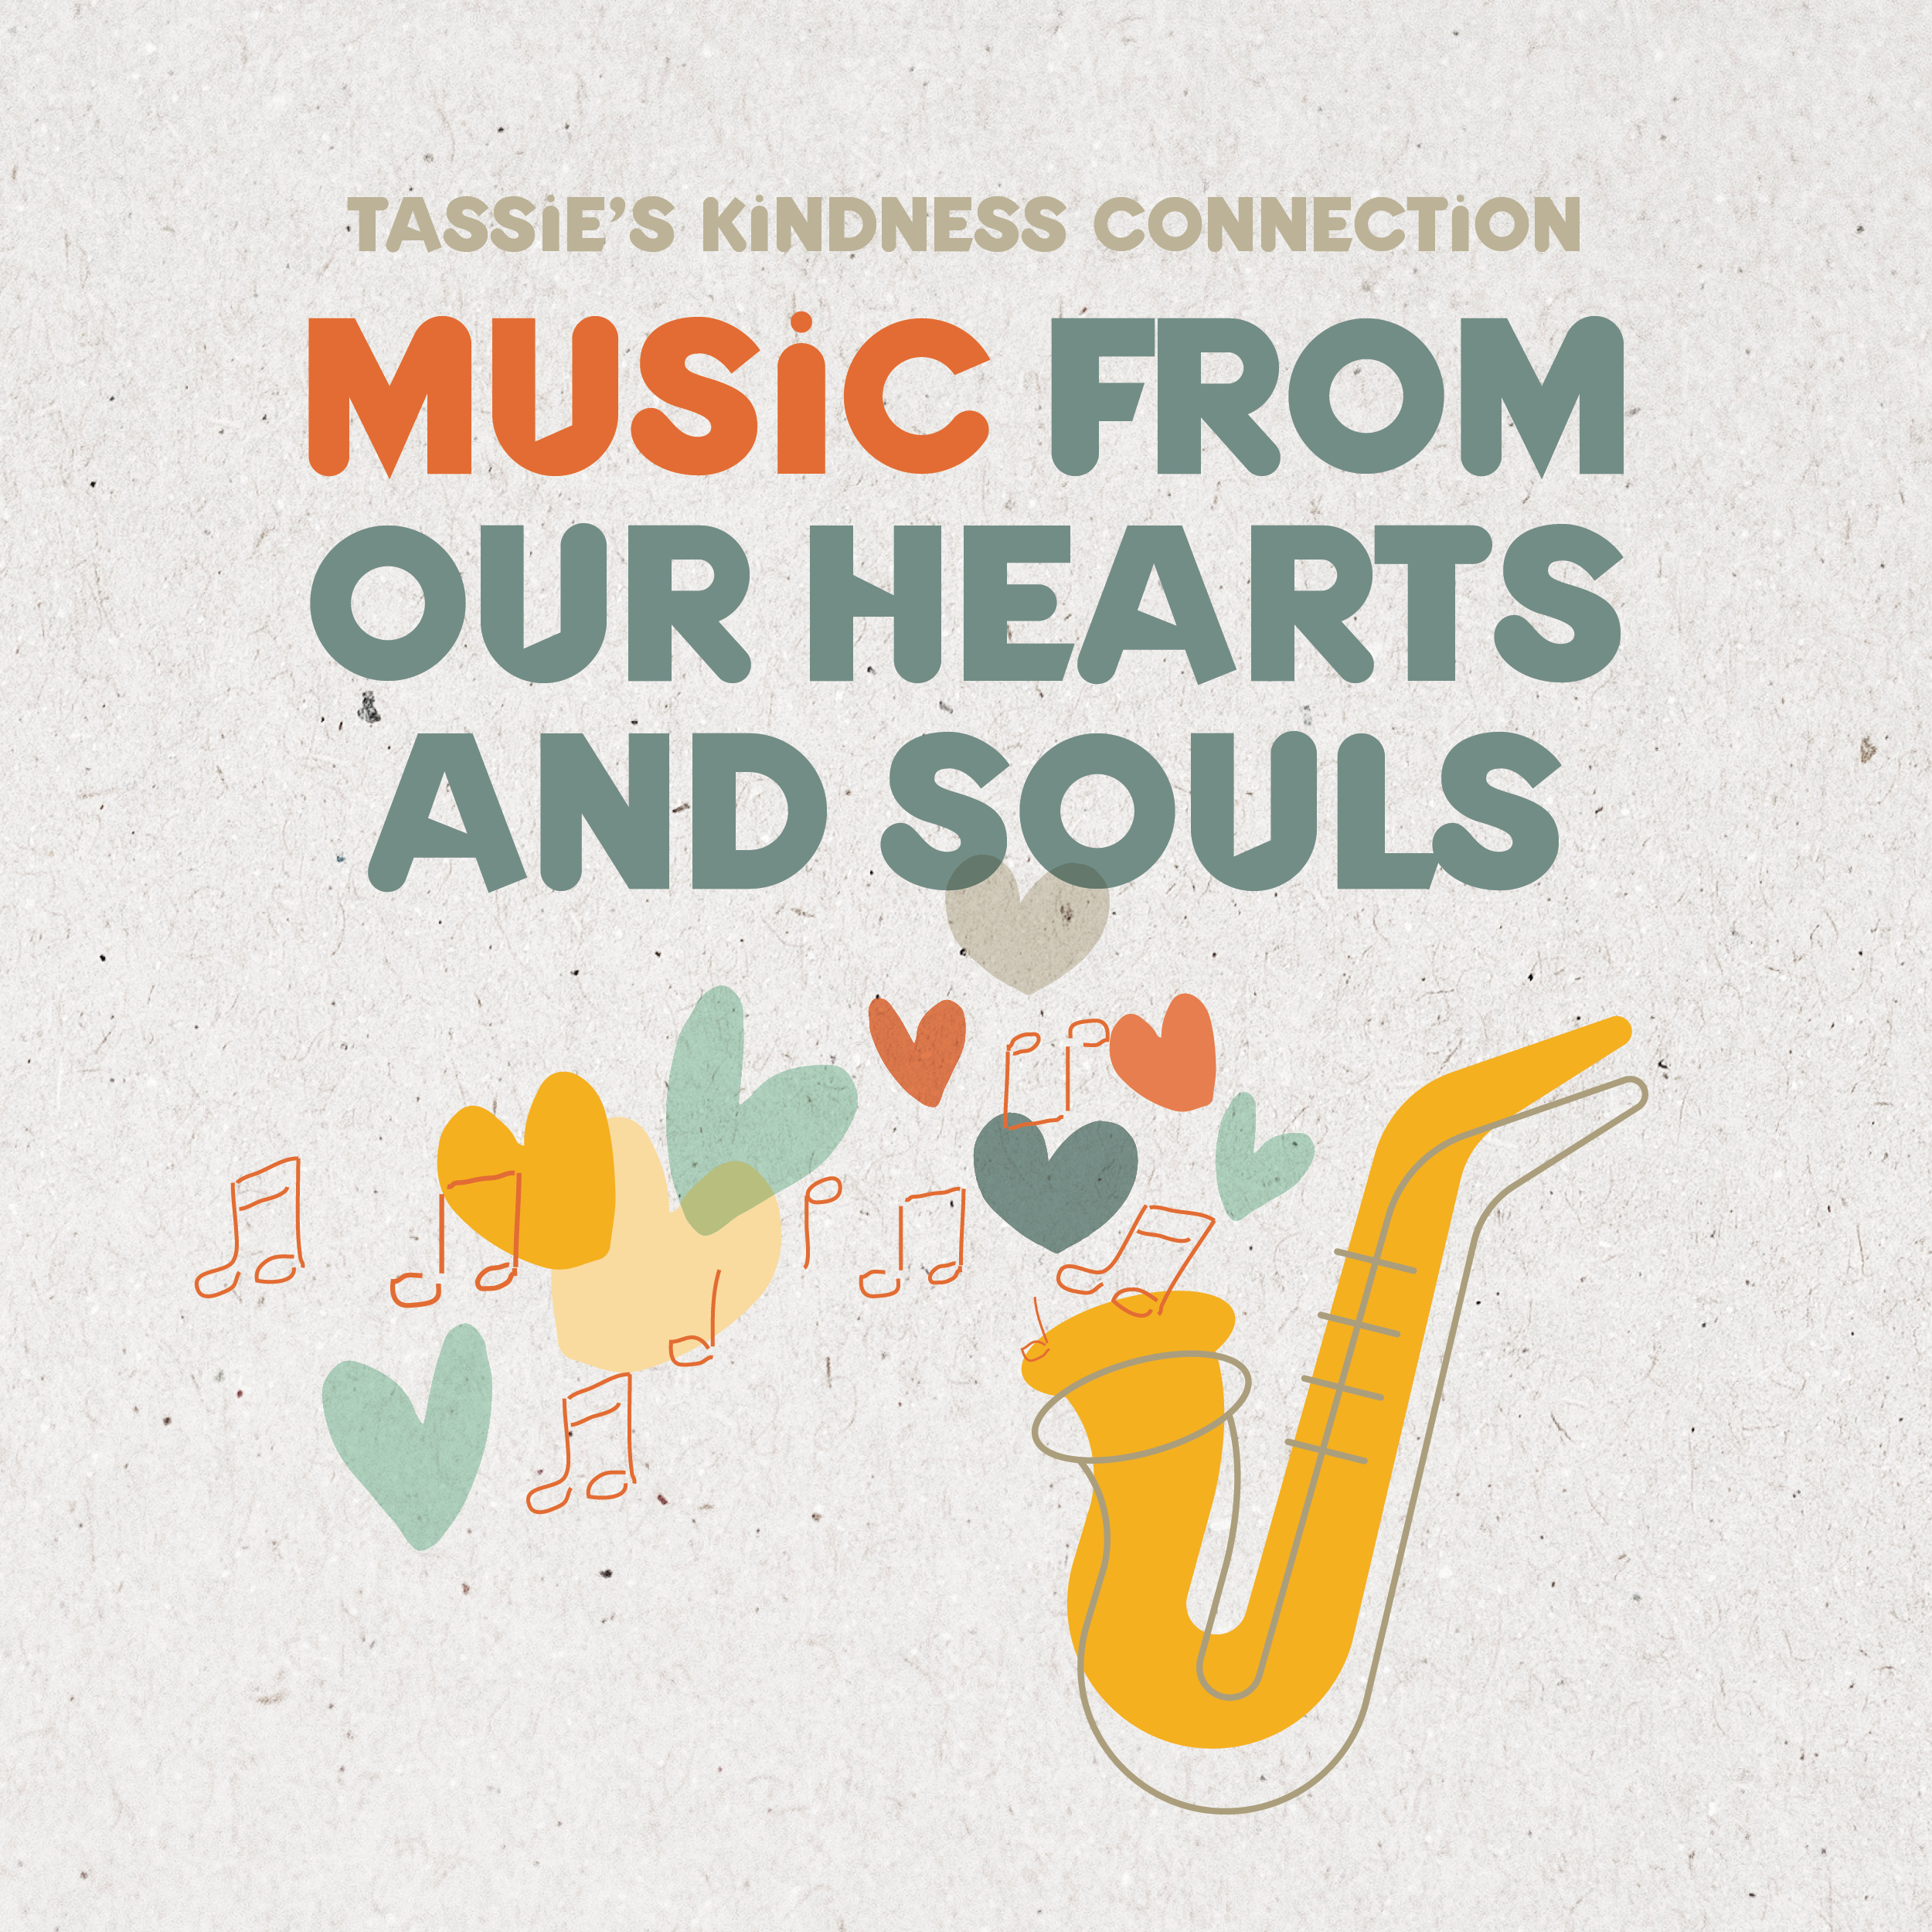 graphic of a saxaphone blowing hearts to illustrate Tassie's Kindness Connectcion's Music From Our Hearts and Souls